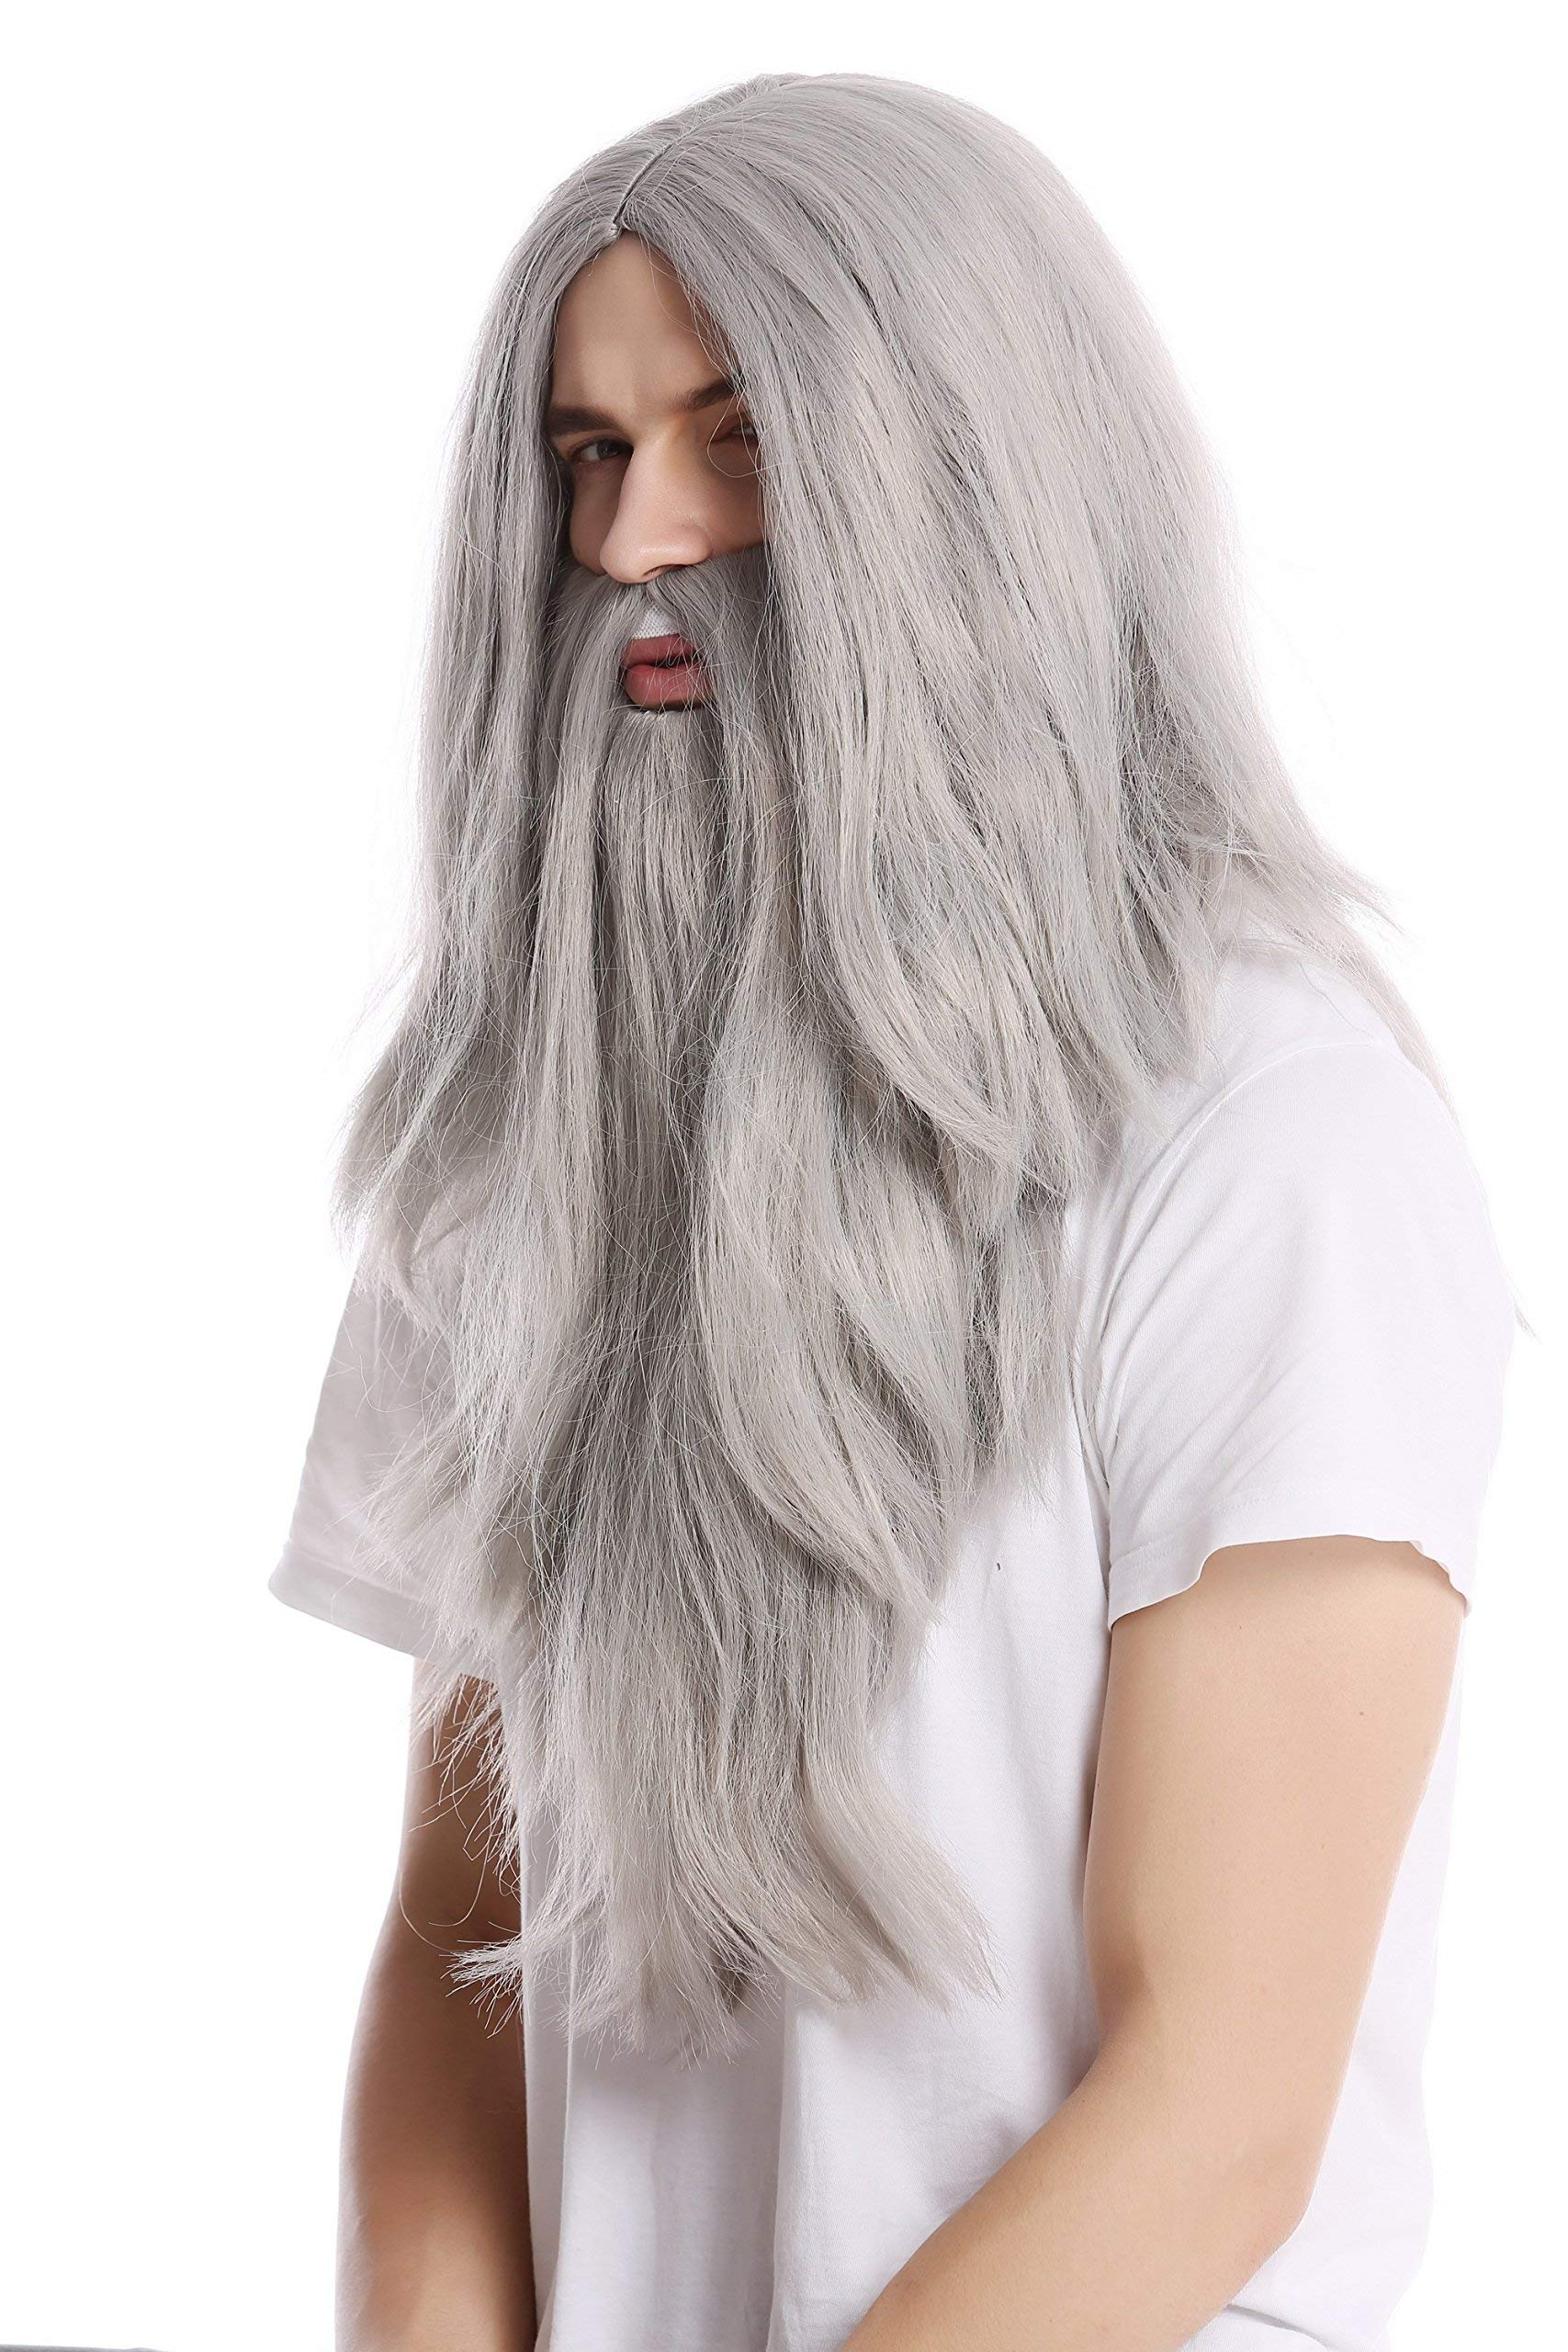 WIG ME UP ® - PW0210-ZA68E Peluca Lisa Larga & Barba Carnaval Color Gris